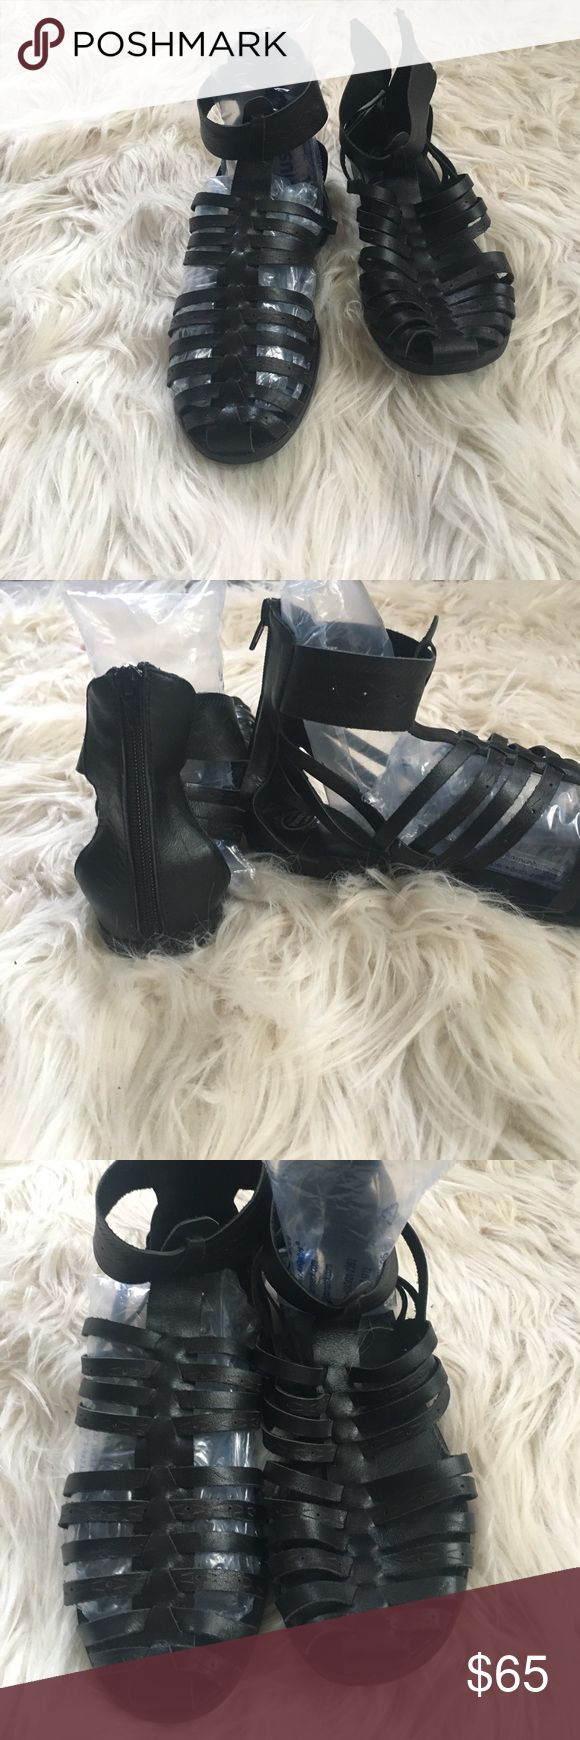 Jeffrey Campbell sandal New❤️zips up the back. Super comfortable! Leather! Jeffrey Campbell Shoes Sandals